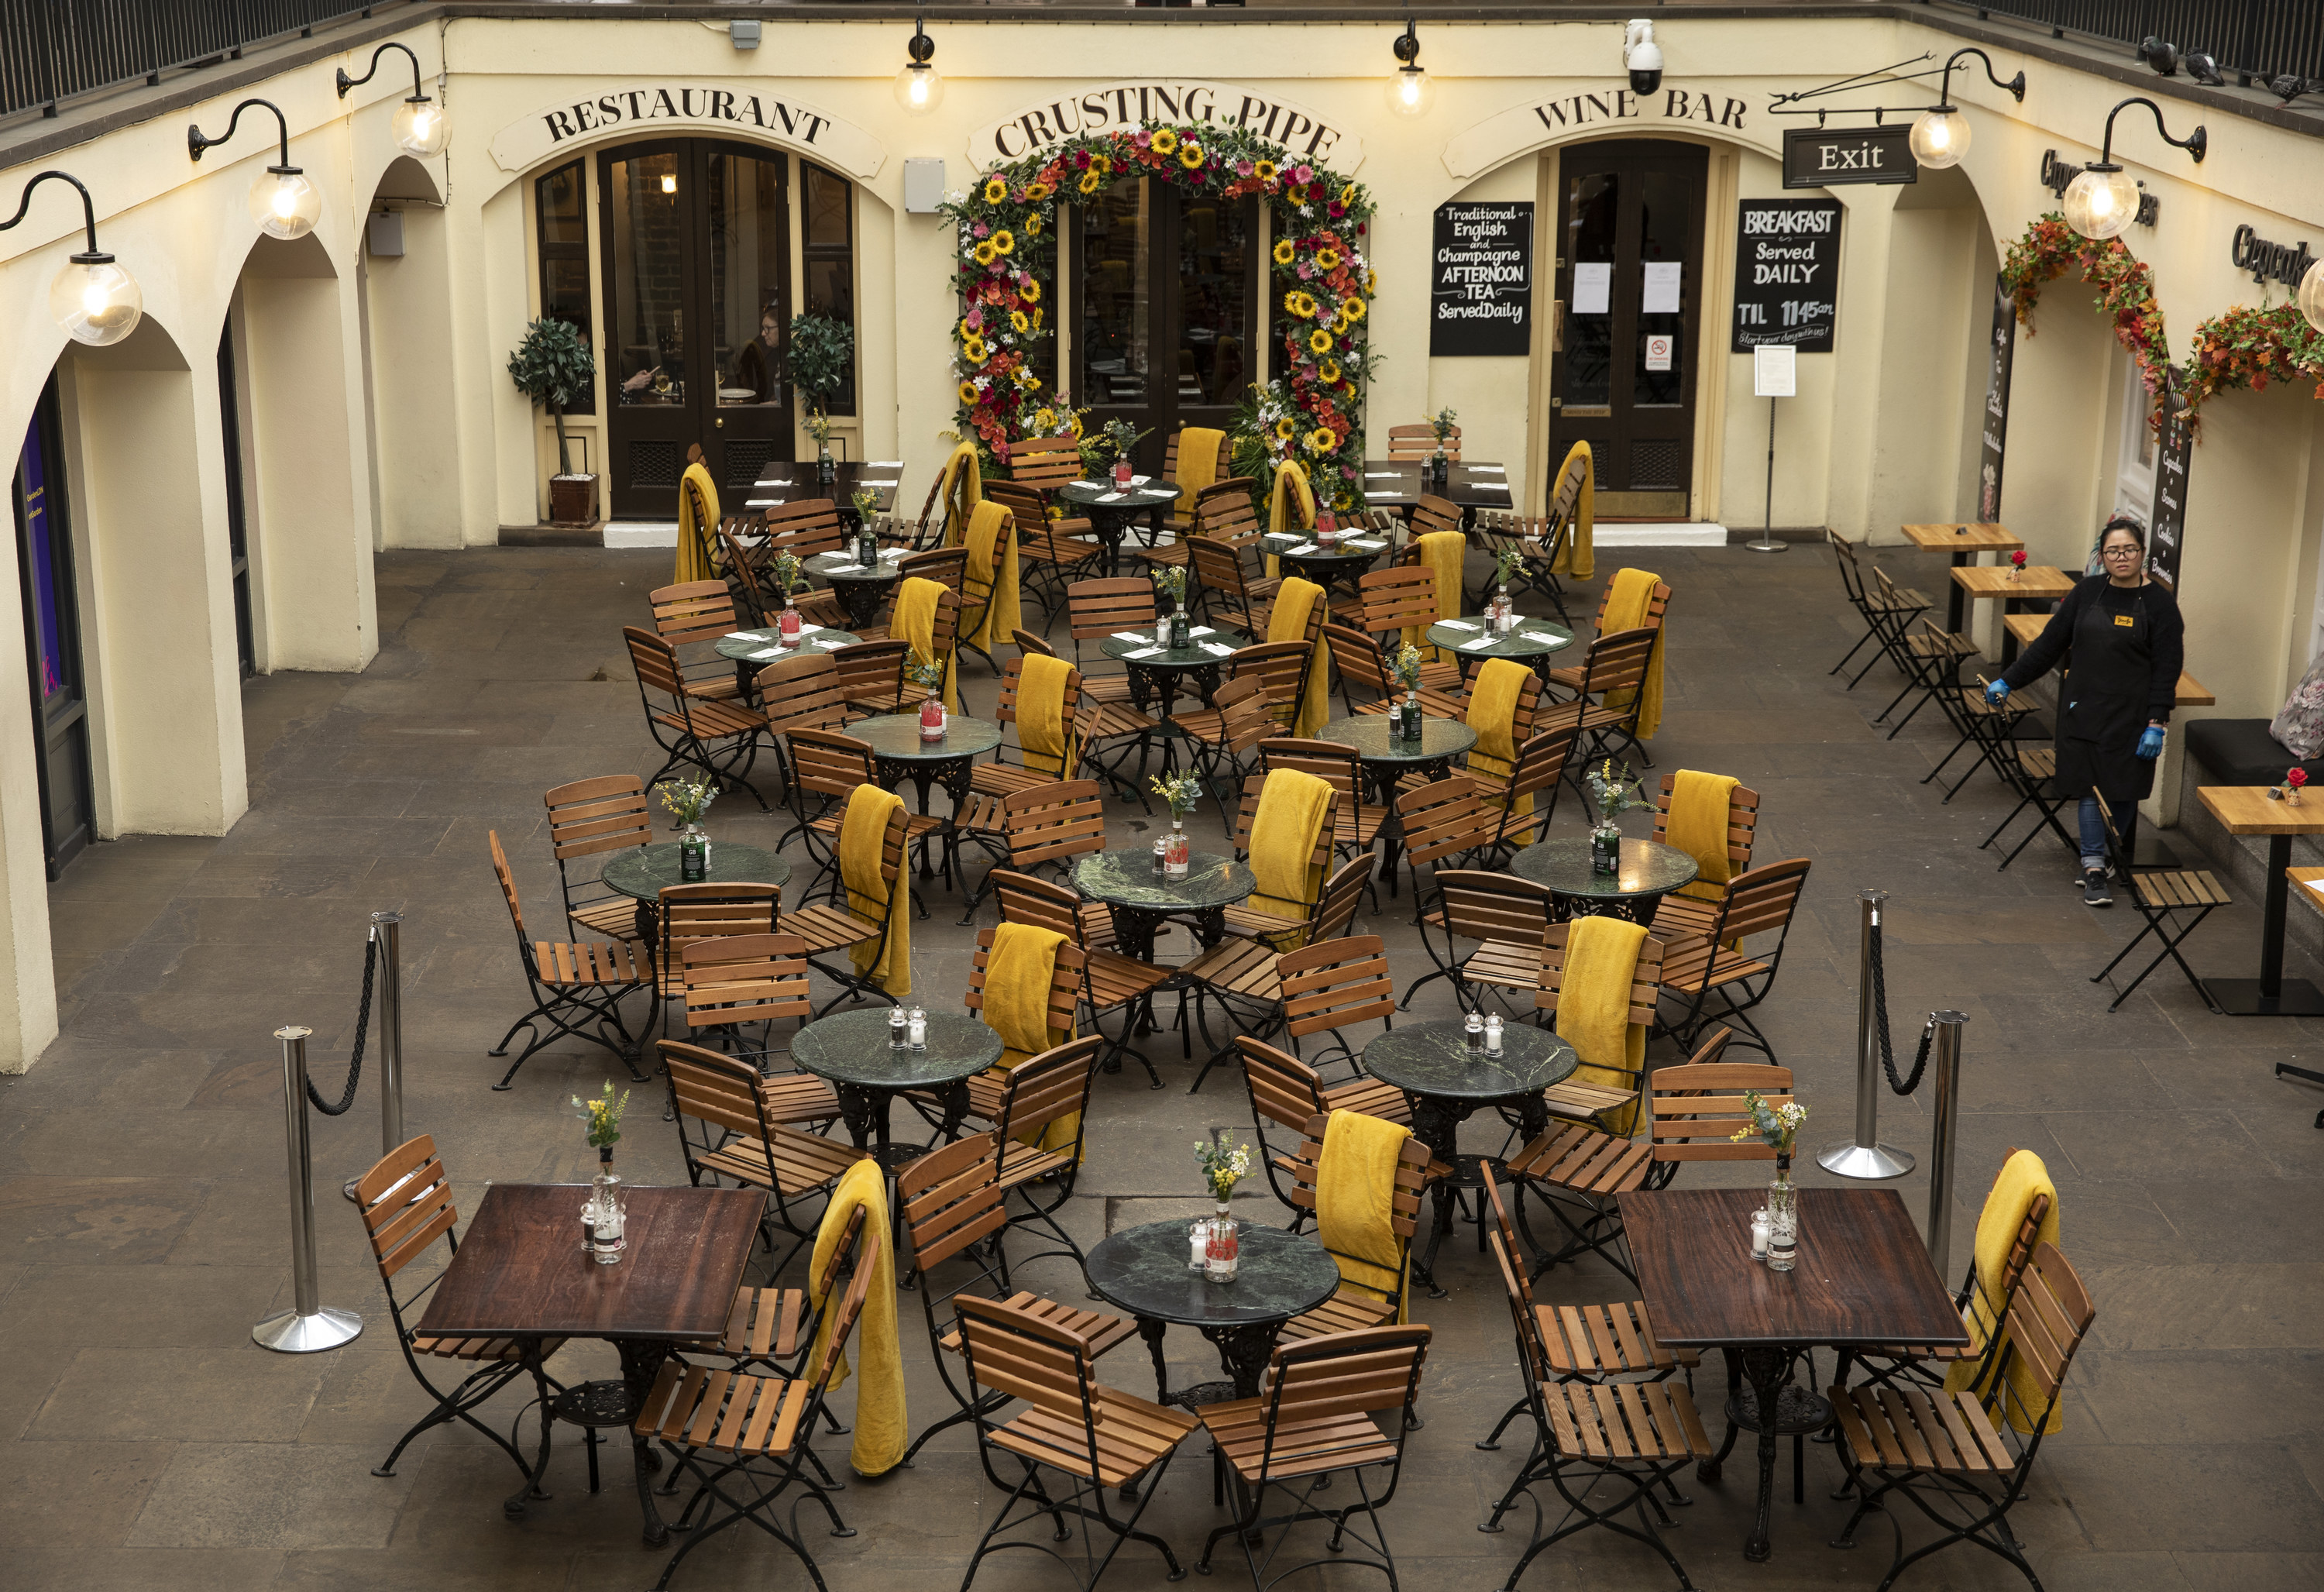 An employee waits over empty tables in Covent Garden on March 17, 2020